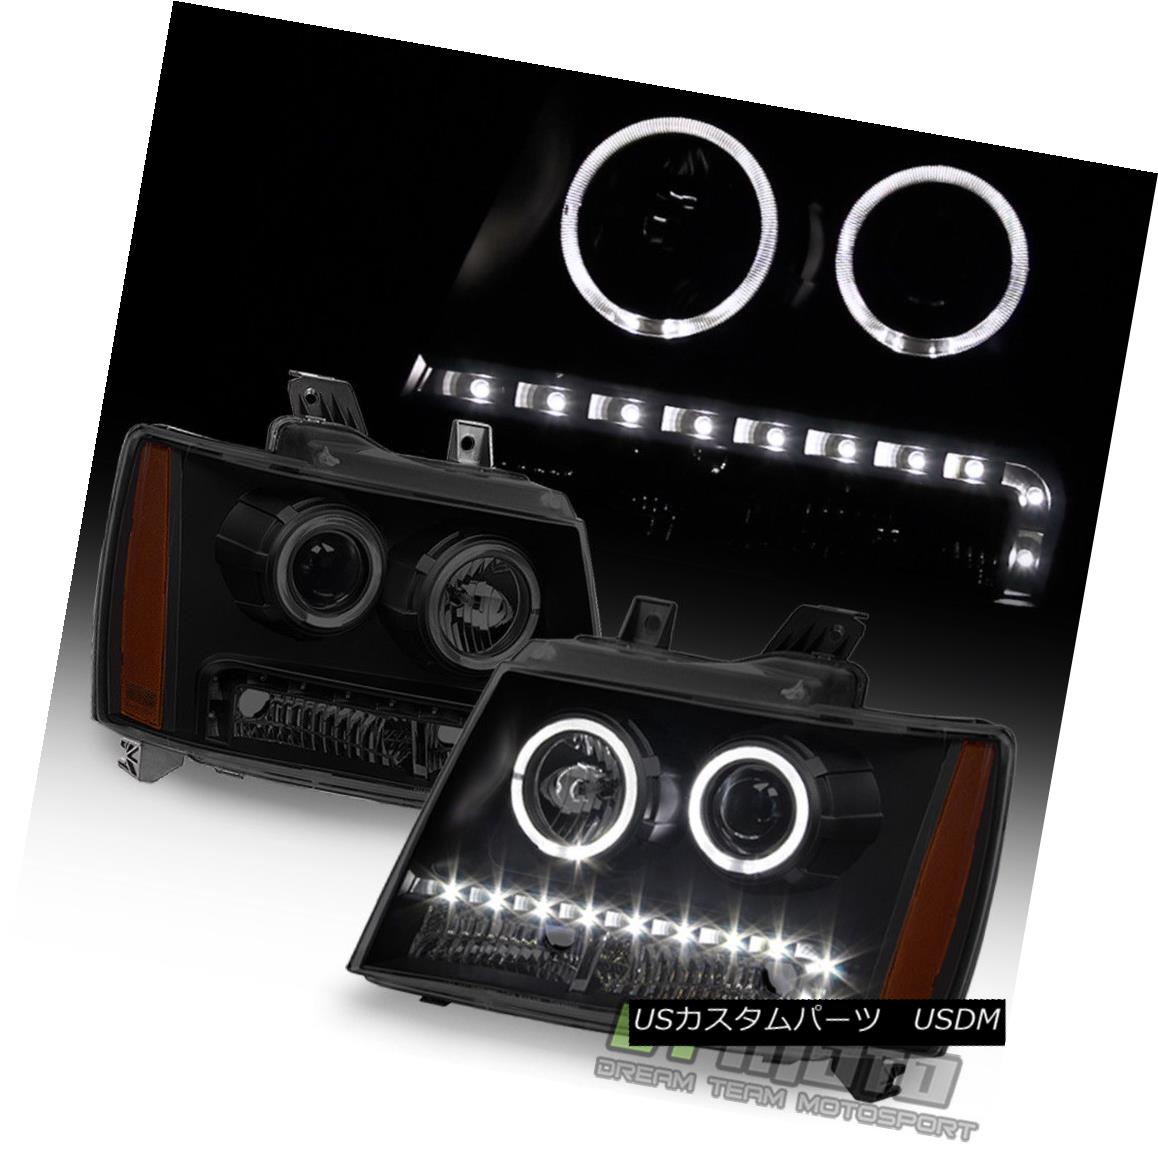 ヘッドライト Blk Smoke 2007-2013 Chevy Suburban 1500 Tahoe LED Halo DRL Projector Headlights Blk Smoke 2007-2013 Chevy Suburban 1500 Tahoe LED Halo DRLプロジェクターヘッドライト